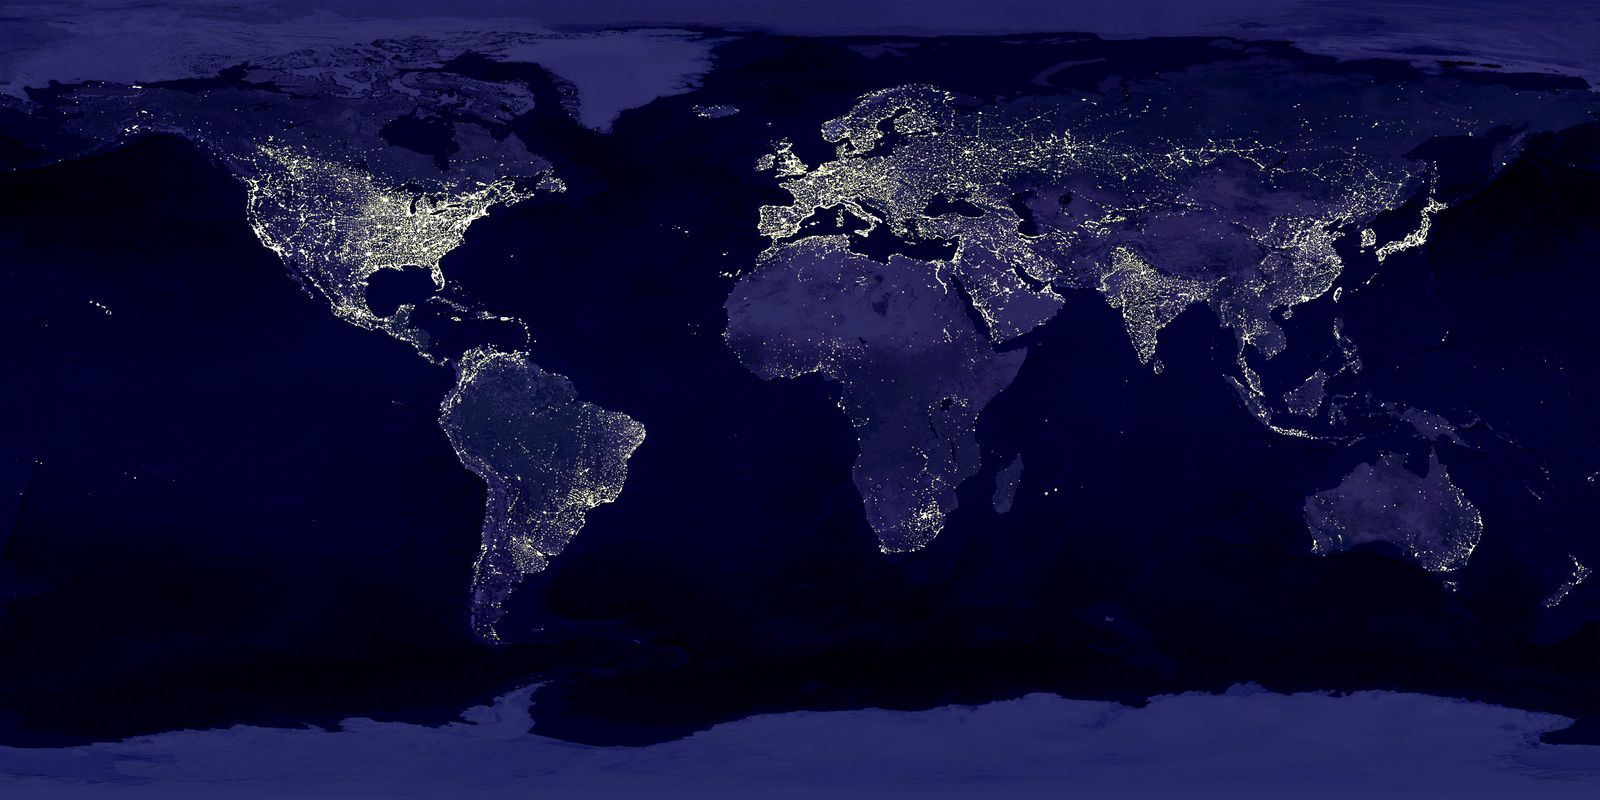 FILES-CLIMATE-WARMING-EARTH HOUR